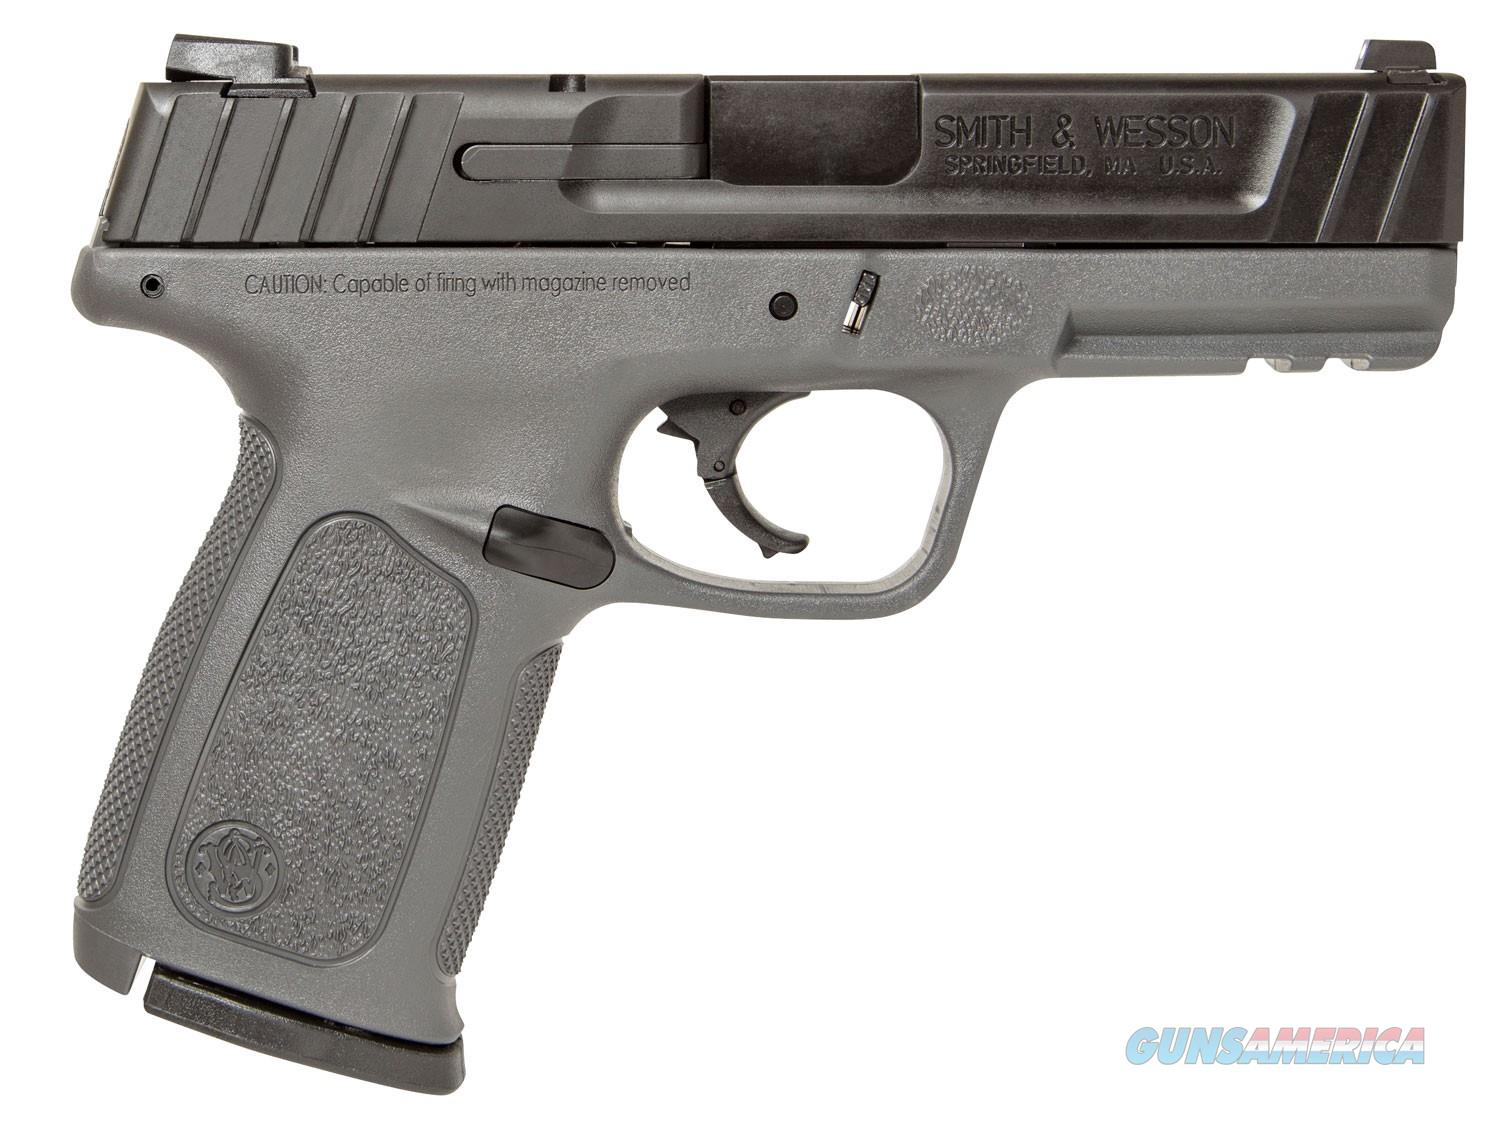 Smith & Wesson SD9VE 9MM GRAY 16R  Guns > Pistols > Smith & Wesson Pistols - Autos > Polymer Frame